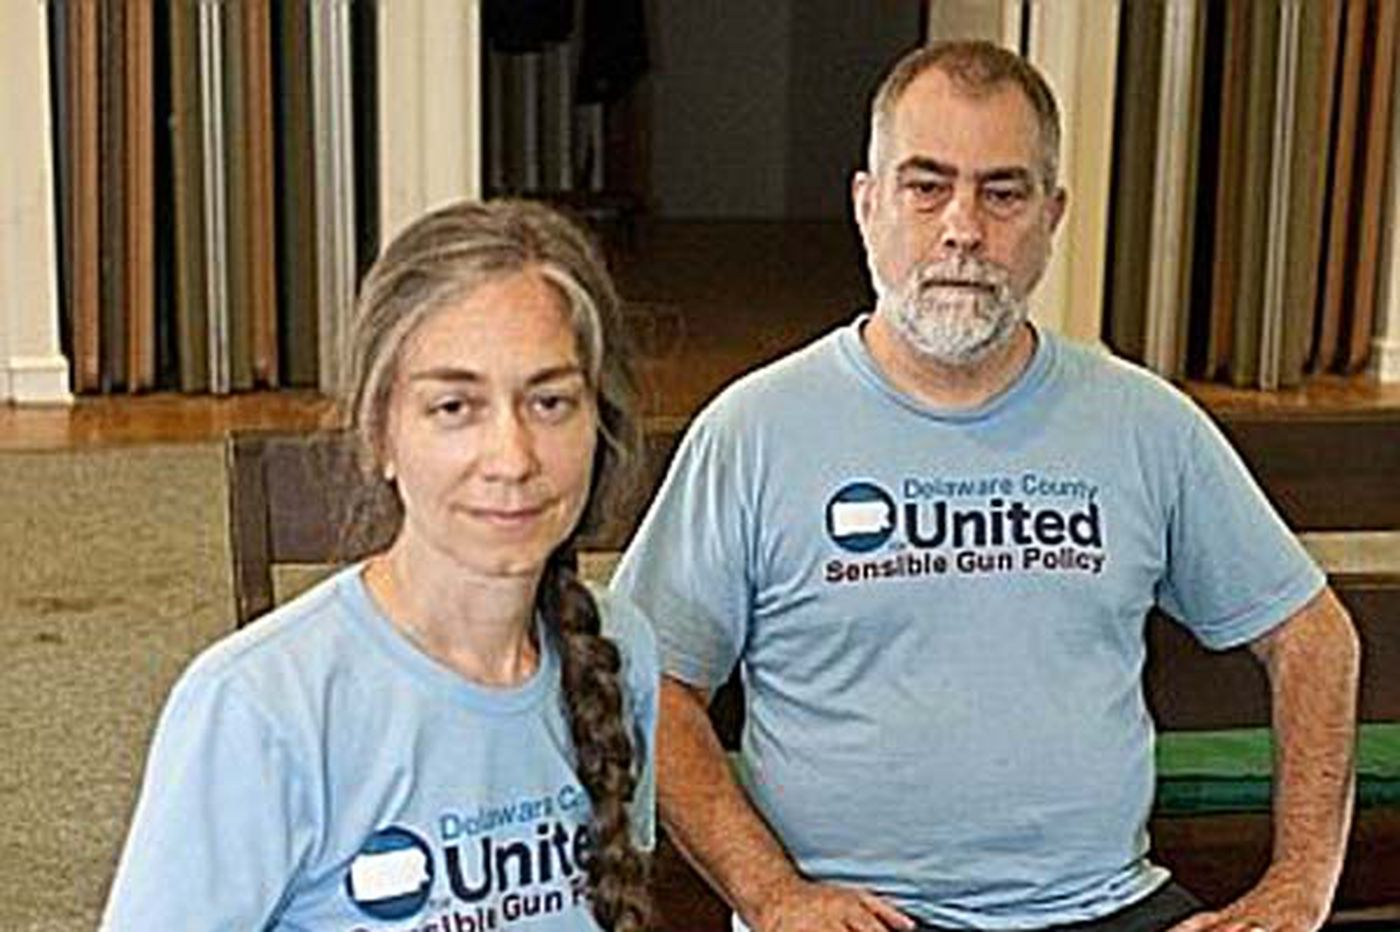 Media couple put their beliefs into action time and again